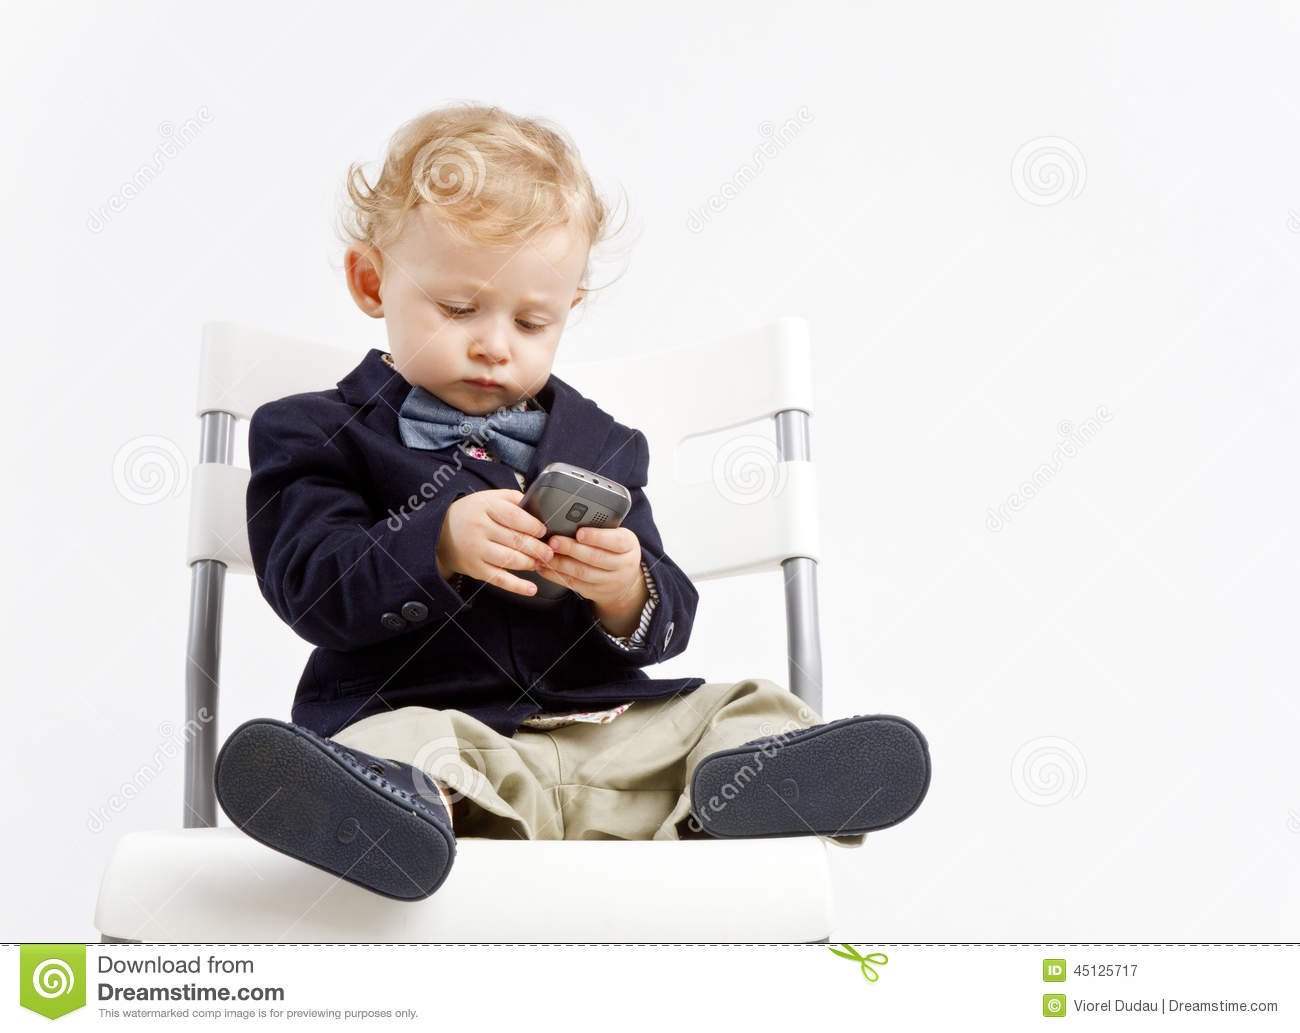 dfdbd5edce76 Business baby with phone stock image. Image of fashionable - 45125717